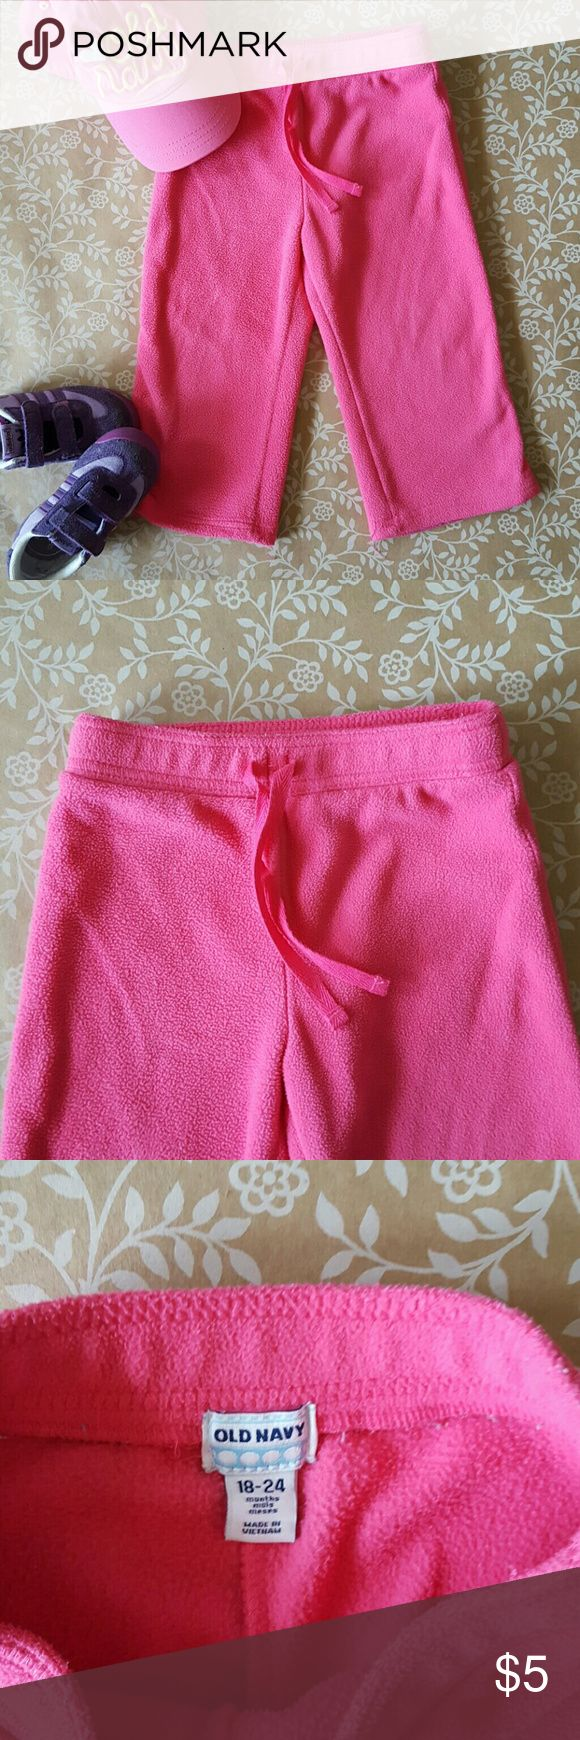 18-24M OLD NAVY FLEECE pants EUC! Pink Fleece Old Navy pants! 18M. Bundle up for savings! 3 or more items from my closet for 20% OFF! Old Navy Bottoms Sweatpants & Joggers